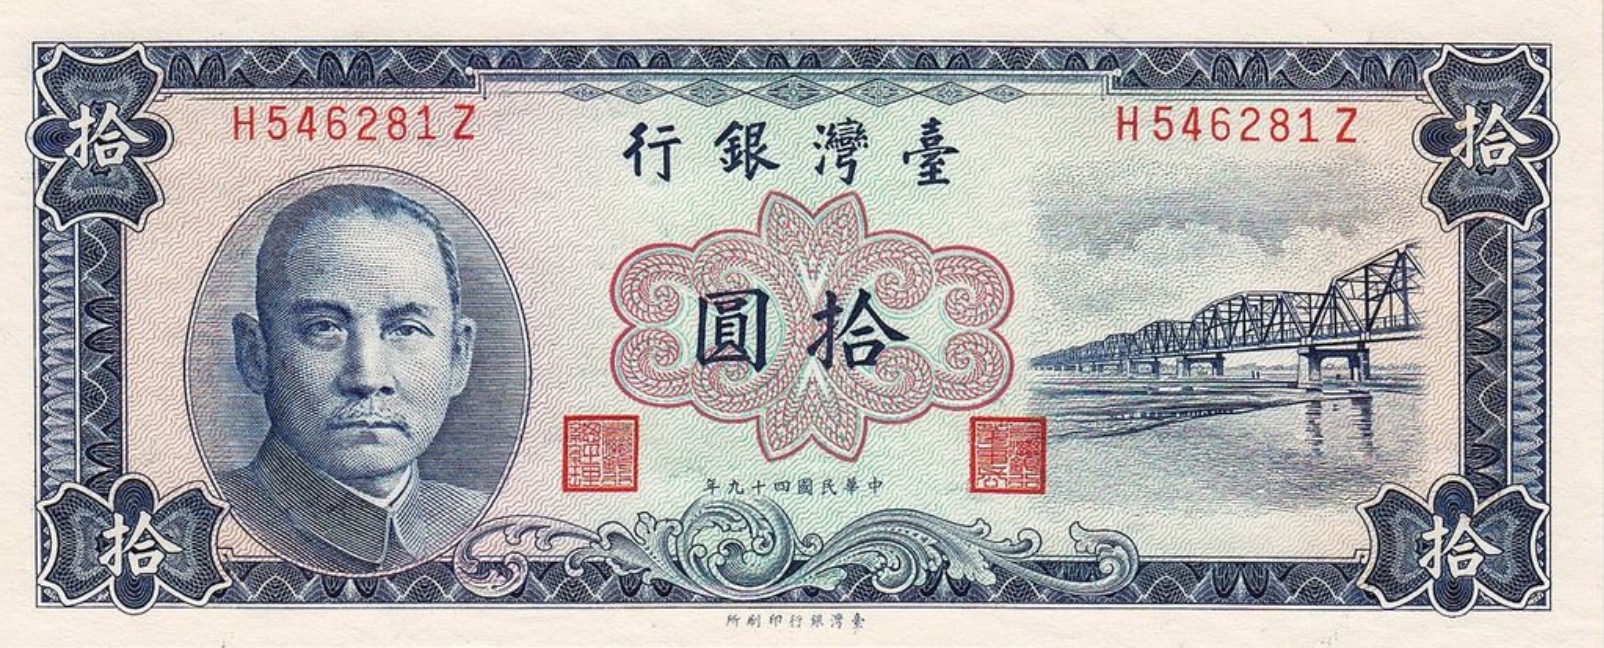 10 New Taiwan Dollars banknote (1960 issue blue)